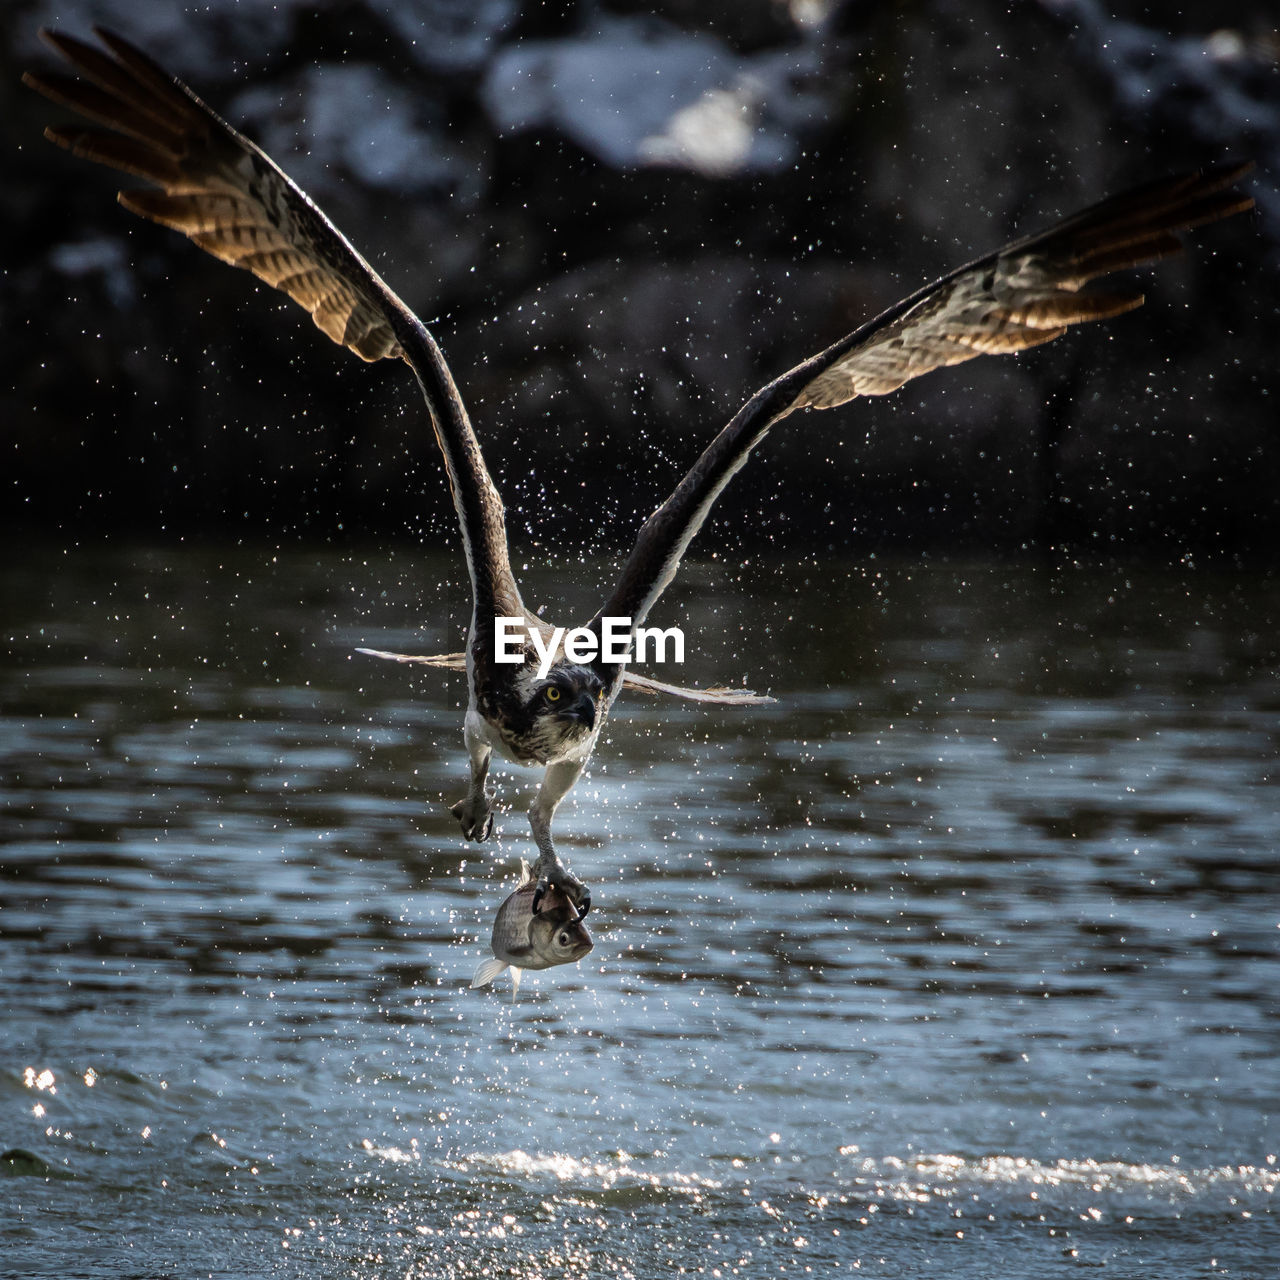 water, animals in the wild, animal wildlife, animal, animal themes, flying, vertebrate, motion, bird, spread wings, one animal, waterfront, nature, splashing, no people, focus on foreground, lake, mid-air, day, outdoors, flapping